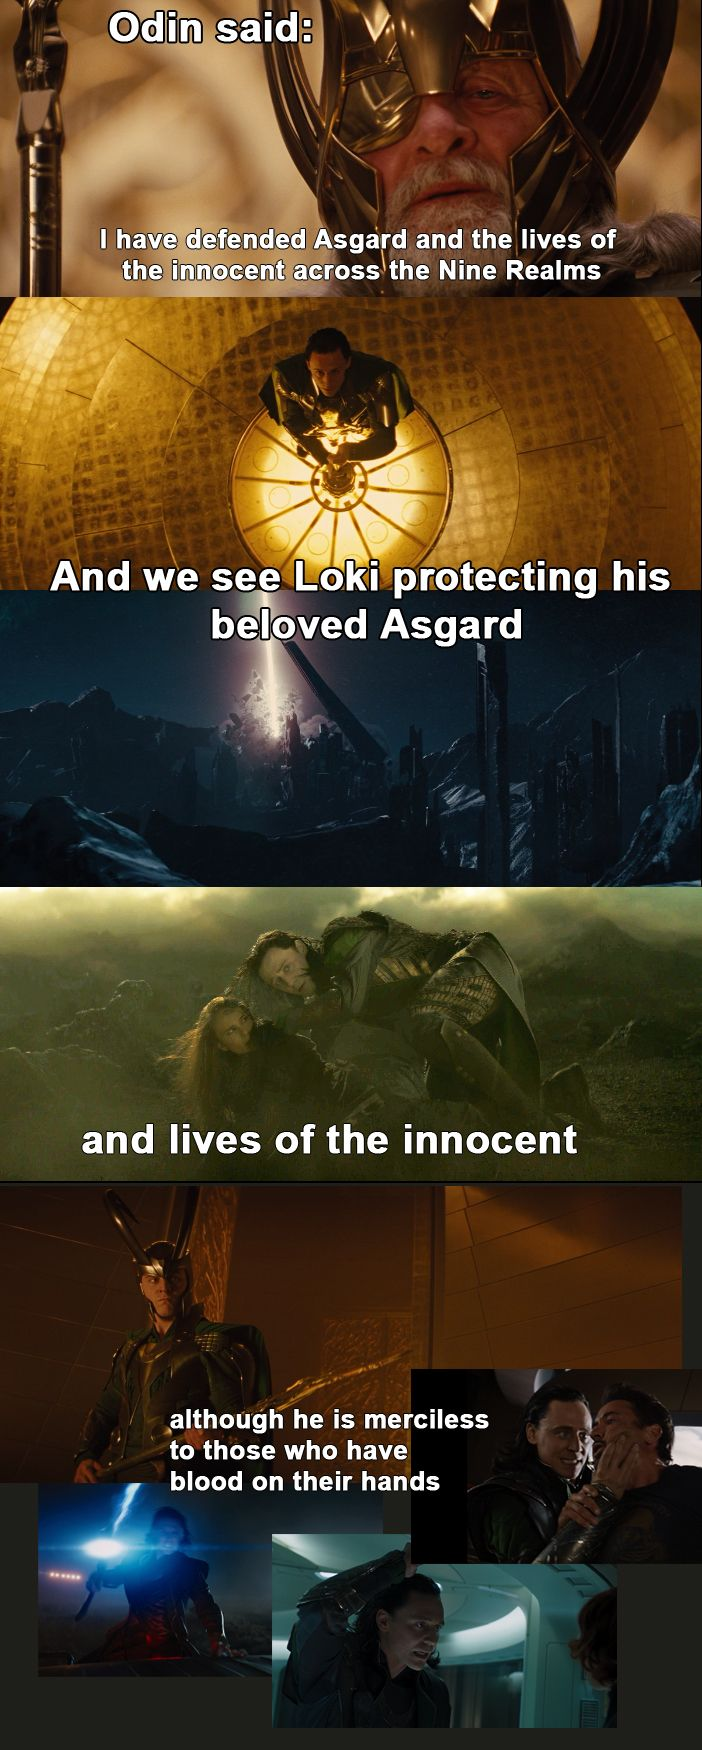 Although a lot of innocent people did get hurt/killed in the New York attack. Personally I believe the theories that say the New York attack wasn't Loki's choice and that he was made to do it so I don't hold New York against him.